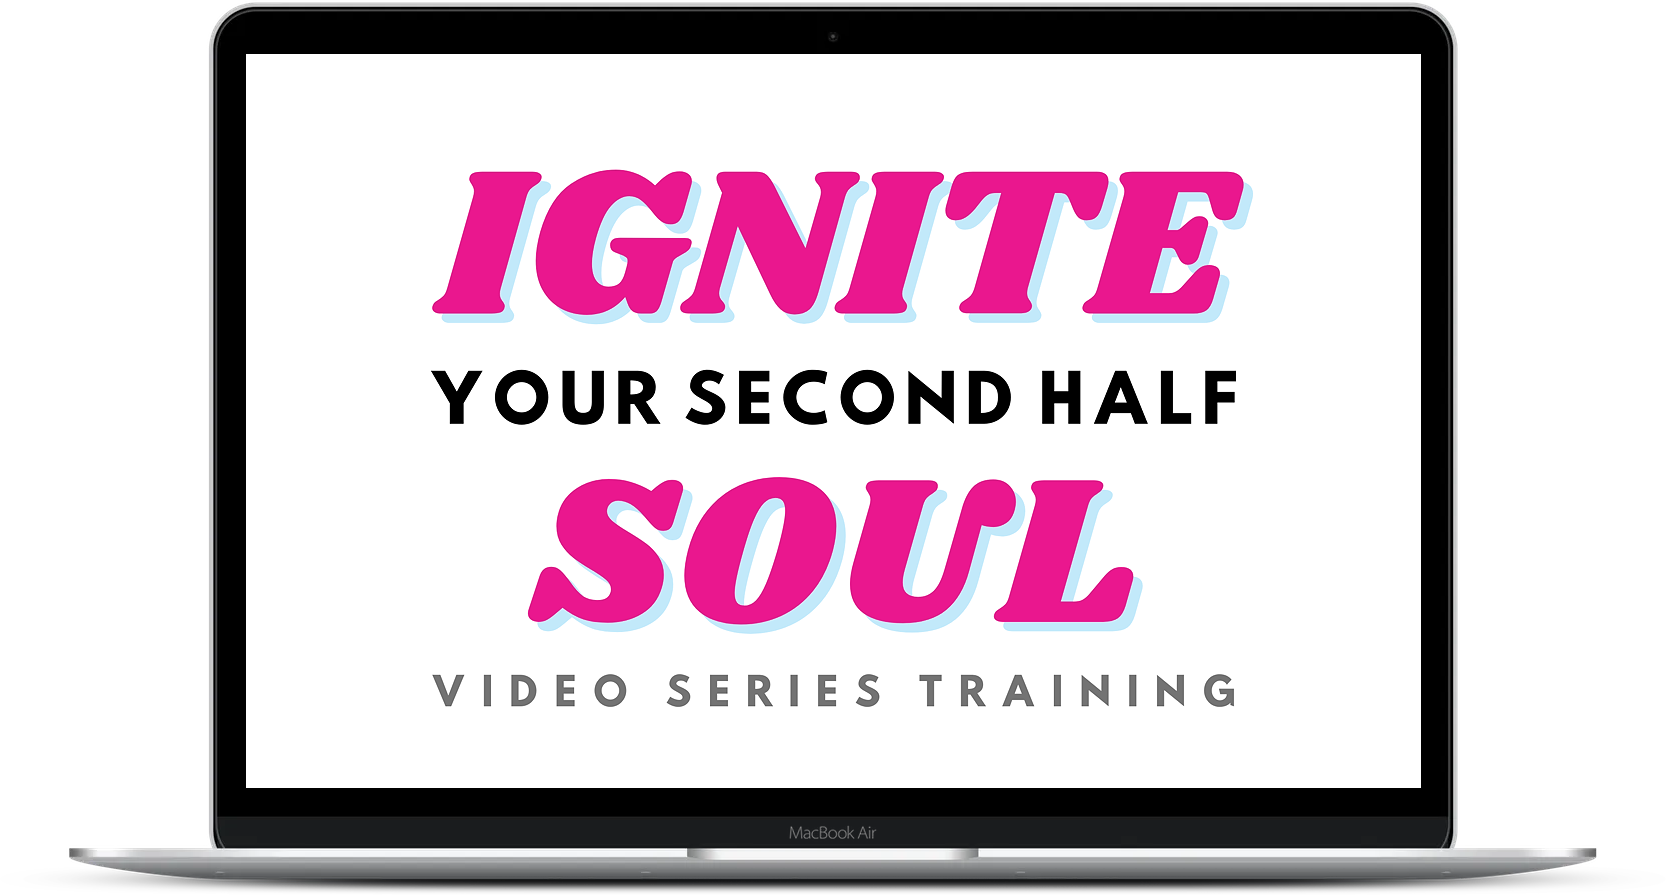 Ignite Your Second Half Soul Video Series Training